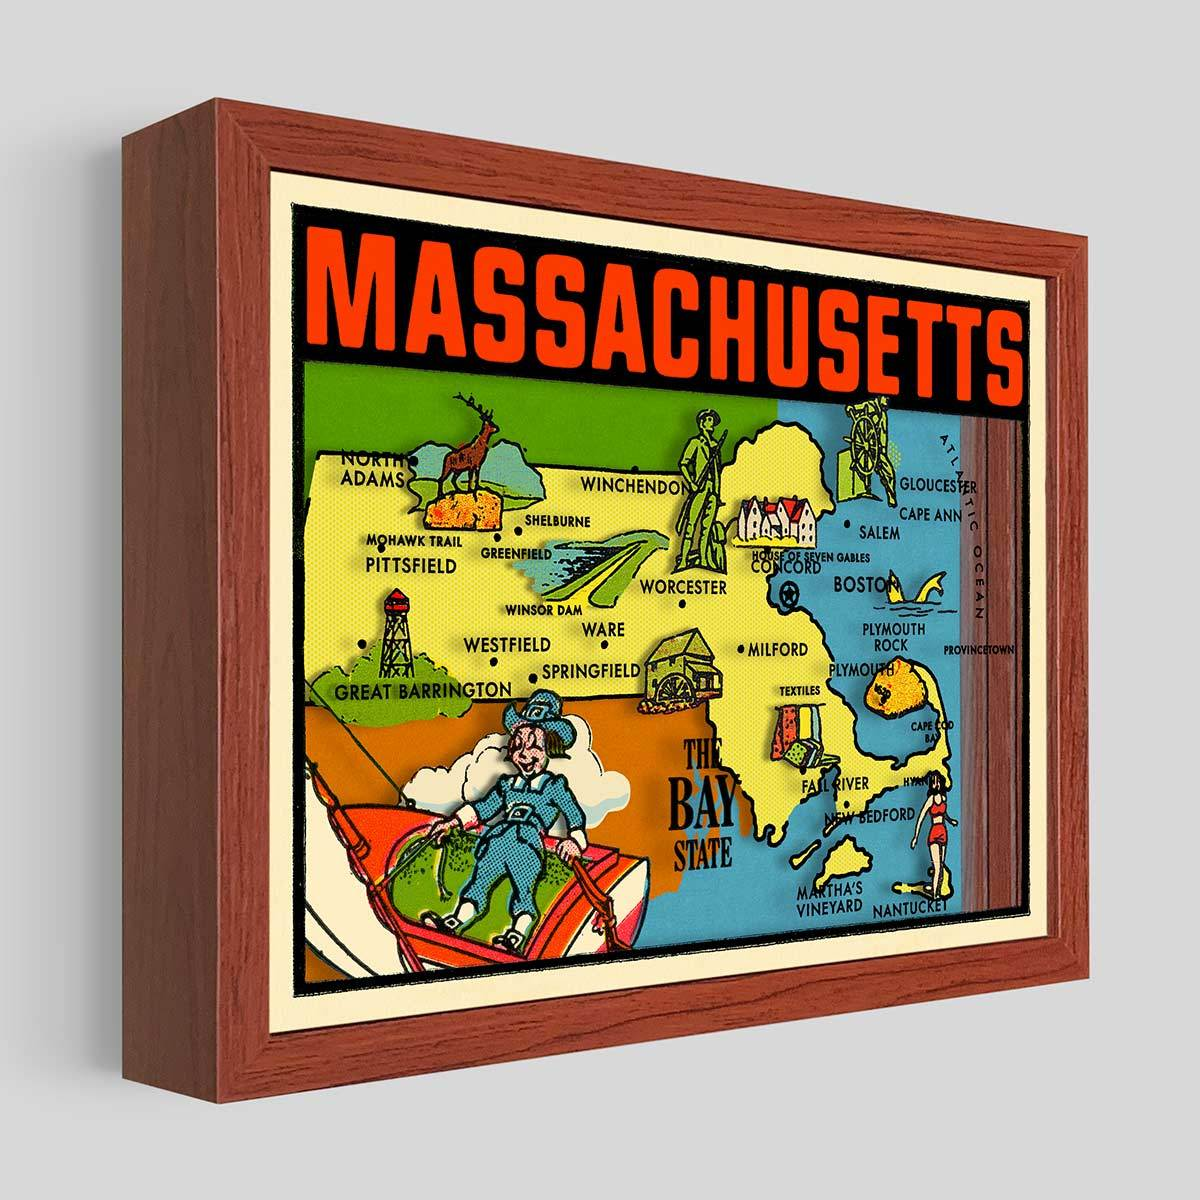 Massachusetts Shadowbox Art